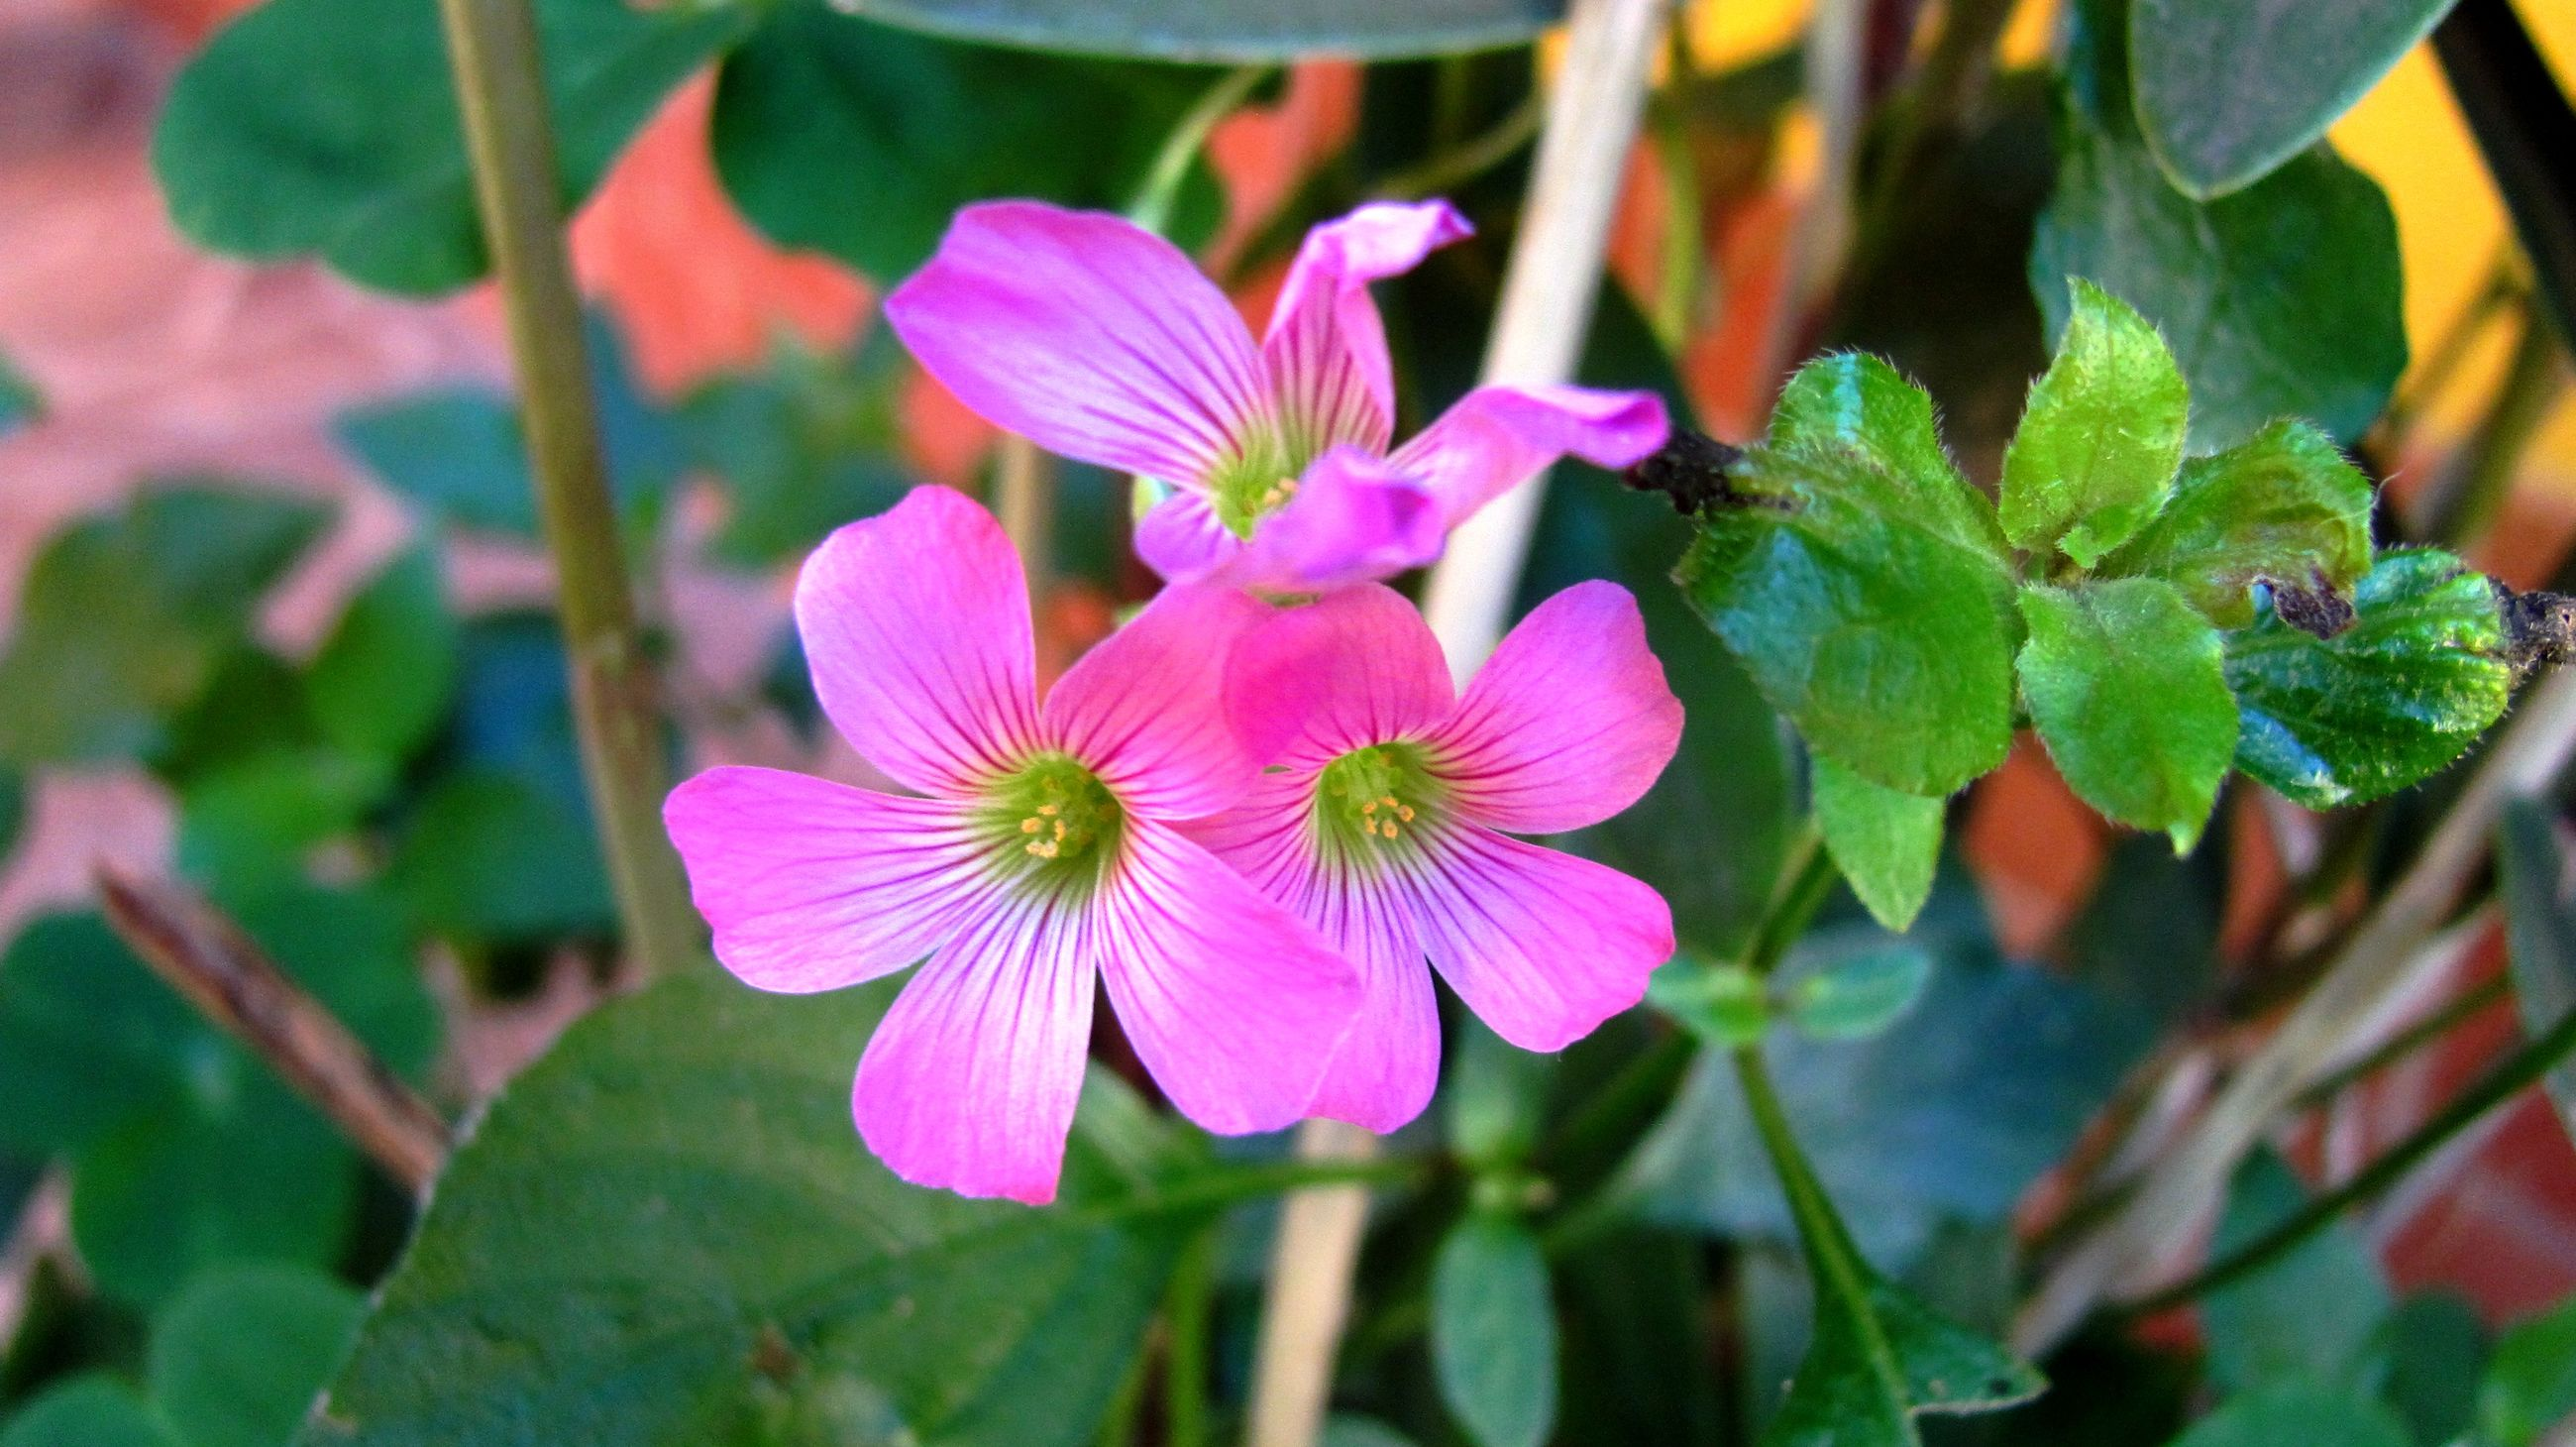 flower, growth, plant, fragility, petal, nature, flower head, beauty in nature, freshness, day, no people, outdoors, close-up, leaf, focus on foreground, blooming, green color, pink color